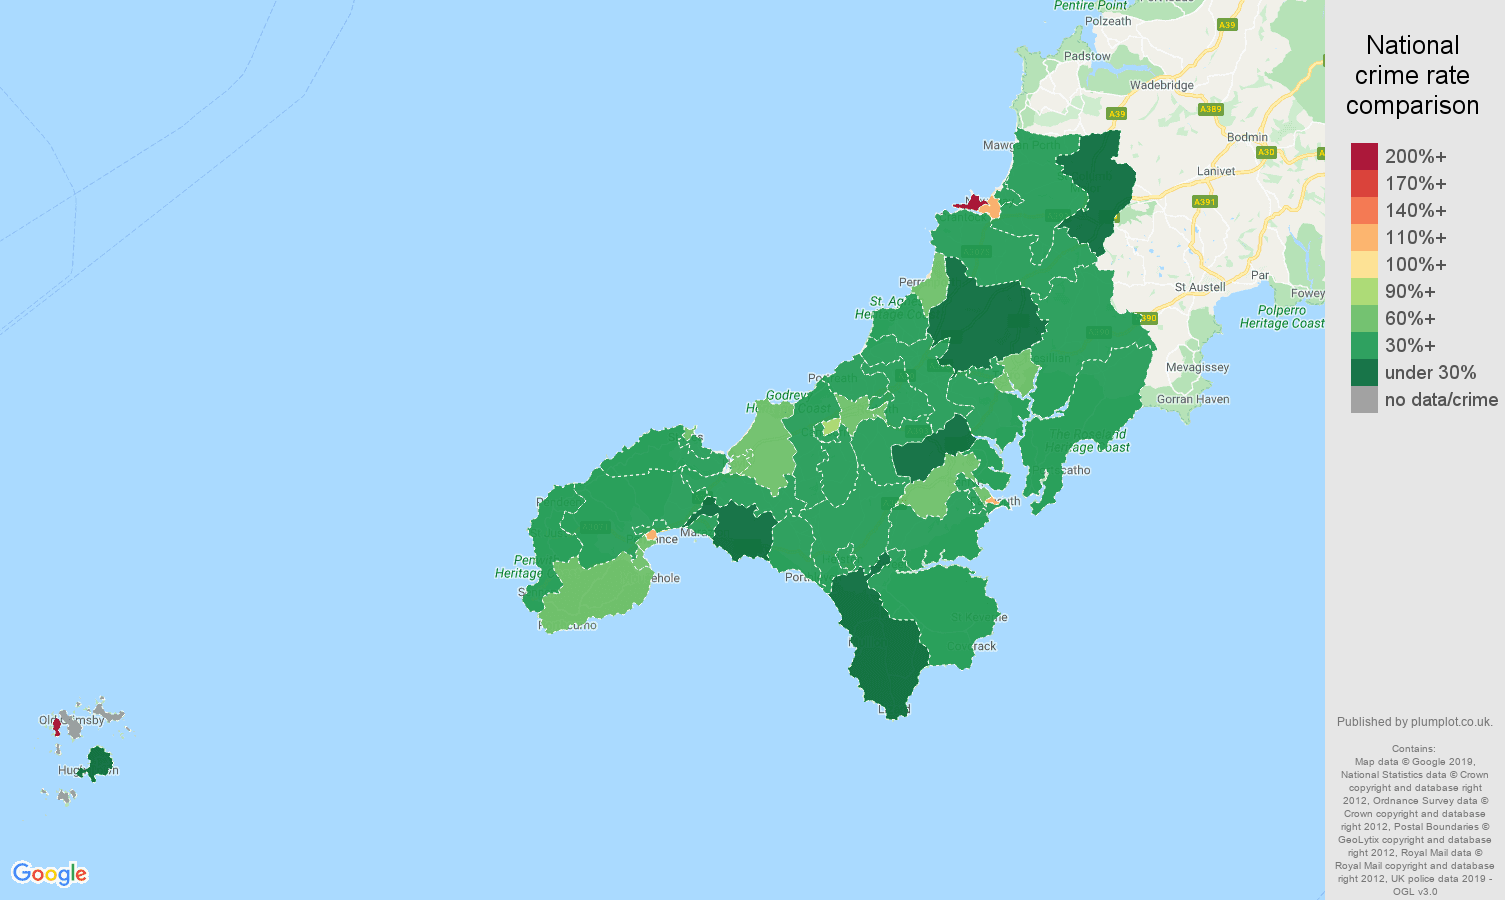 Truro other theft crime rate comparison map